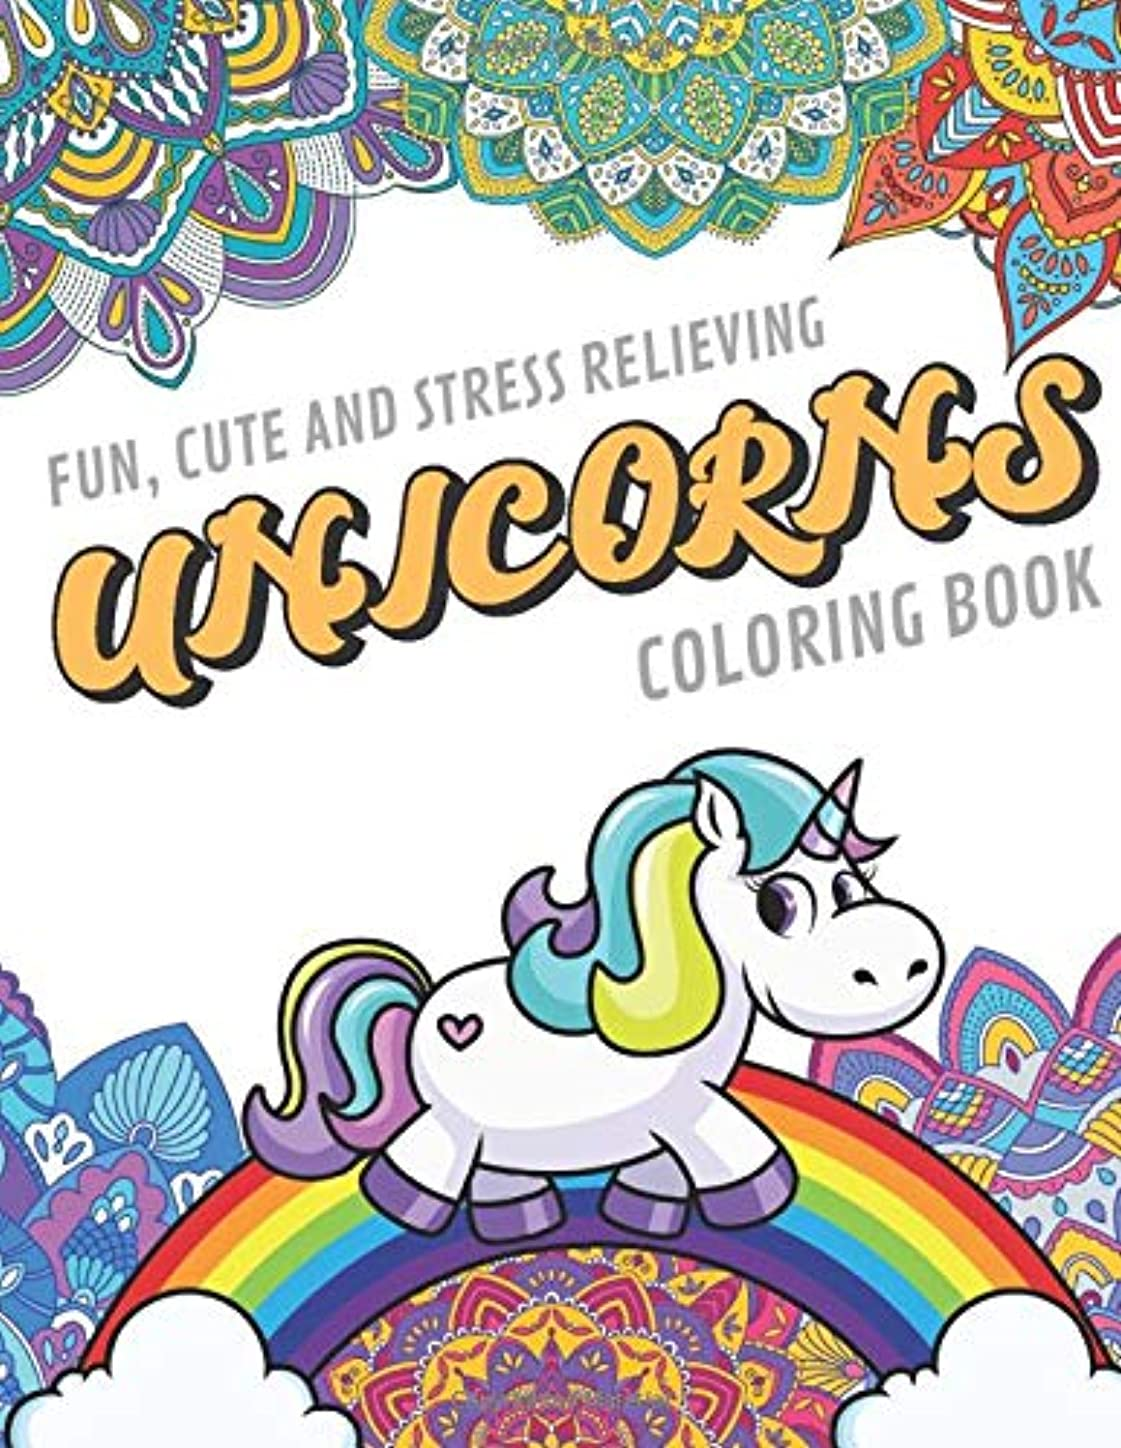 不振メイト臨検Fun Cute And Stress Relieving Unicorns Coloring Book: Find Relaxation And Mindfulness By Coloring the Stress Away With Our Beautiful Black and White Magical Unicorn and Mandala Color Pages For All Ages. Perfect Gag Gift or Birthday Present or Holidays